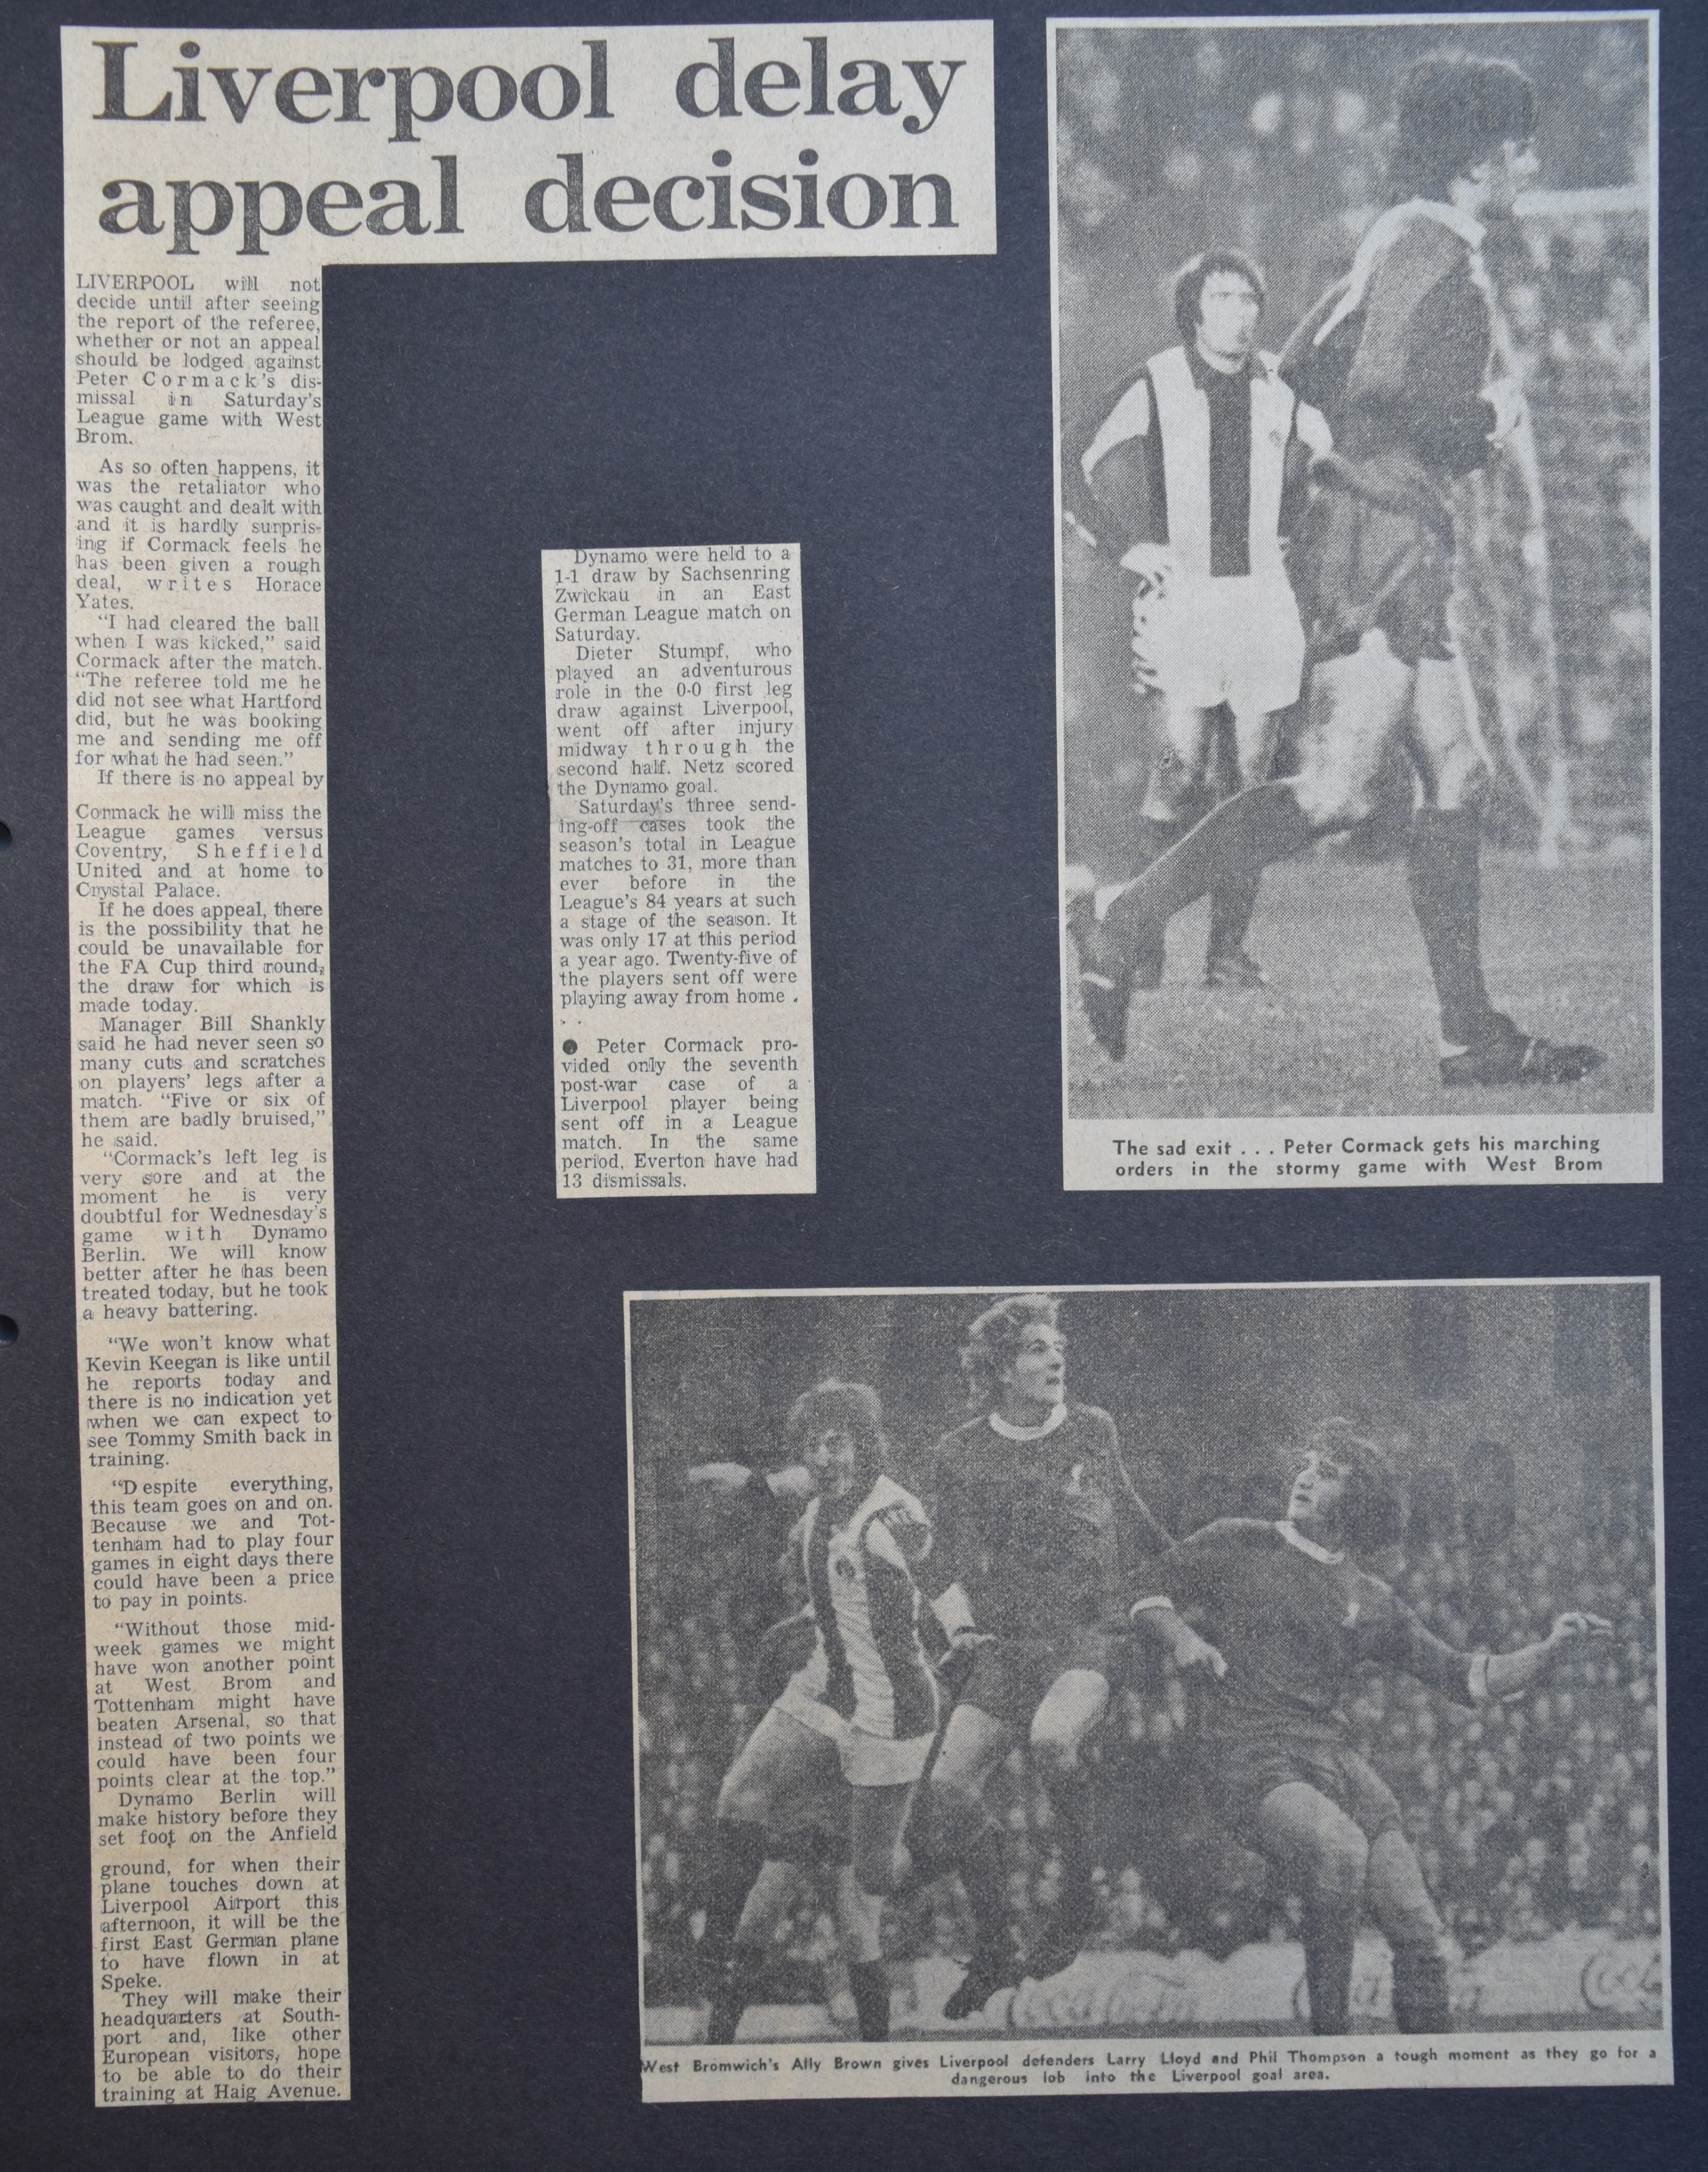 Cormack sent off - 9 December 1972